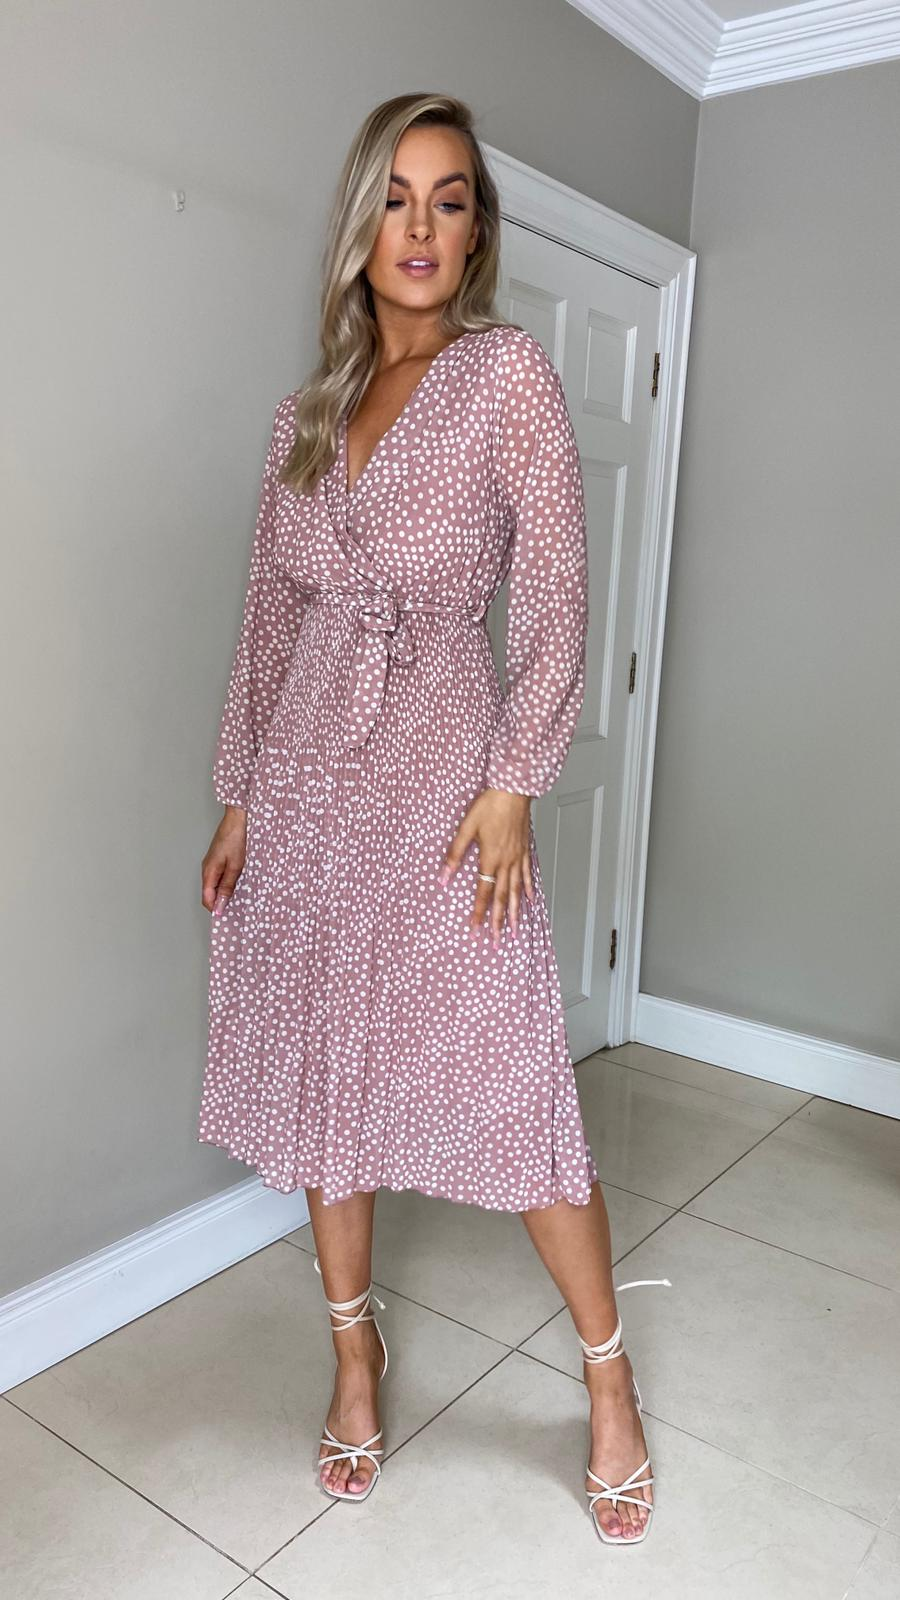 Cathy spot dress - blush